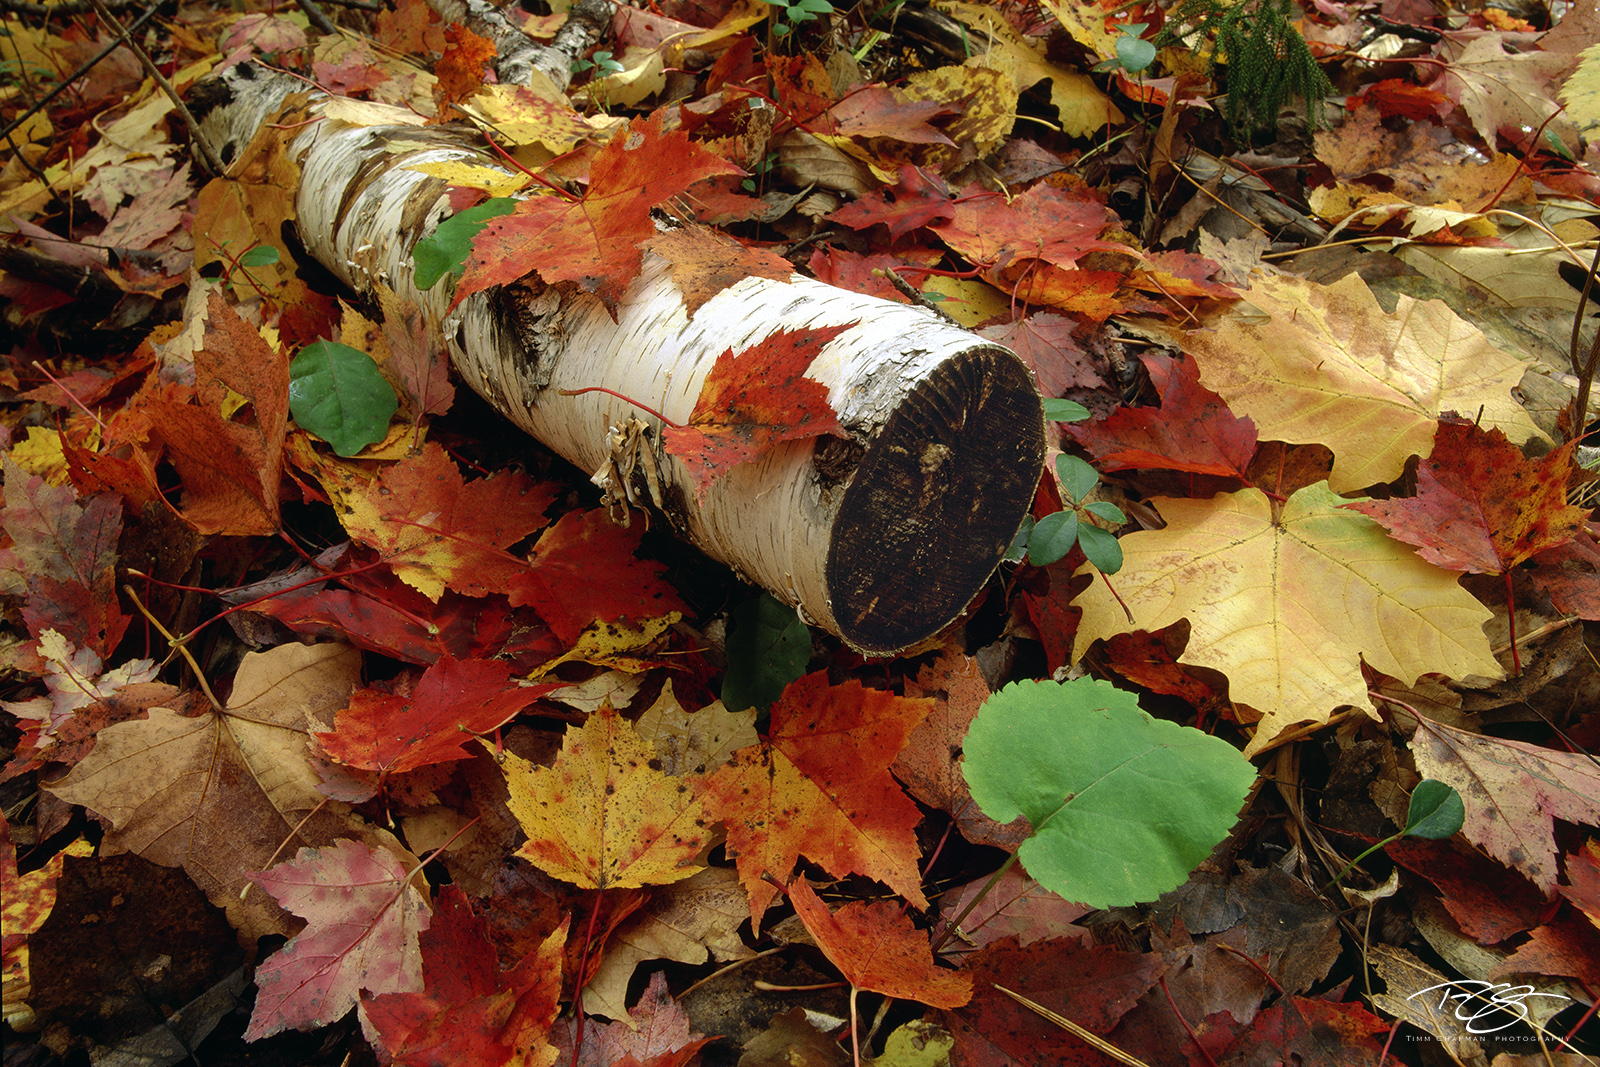 autumn leaves, fall colors, fall colours, autumn colours, maple leaves, birch bark, aspen, green leaves, yellow leaves, gold leaves, red leaves, orange leaves, oak leaves, maple, oak, forest floor, photo